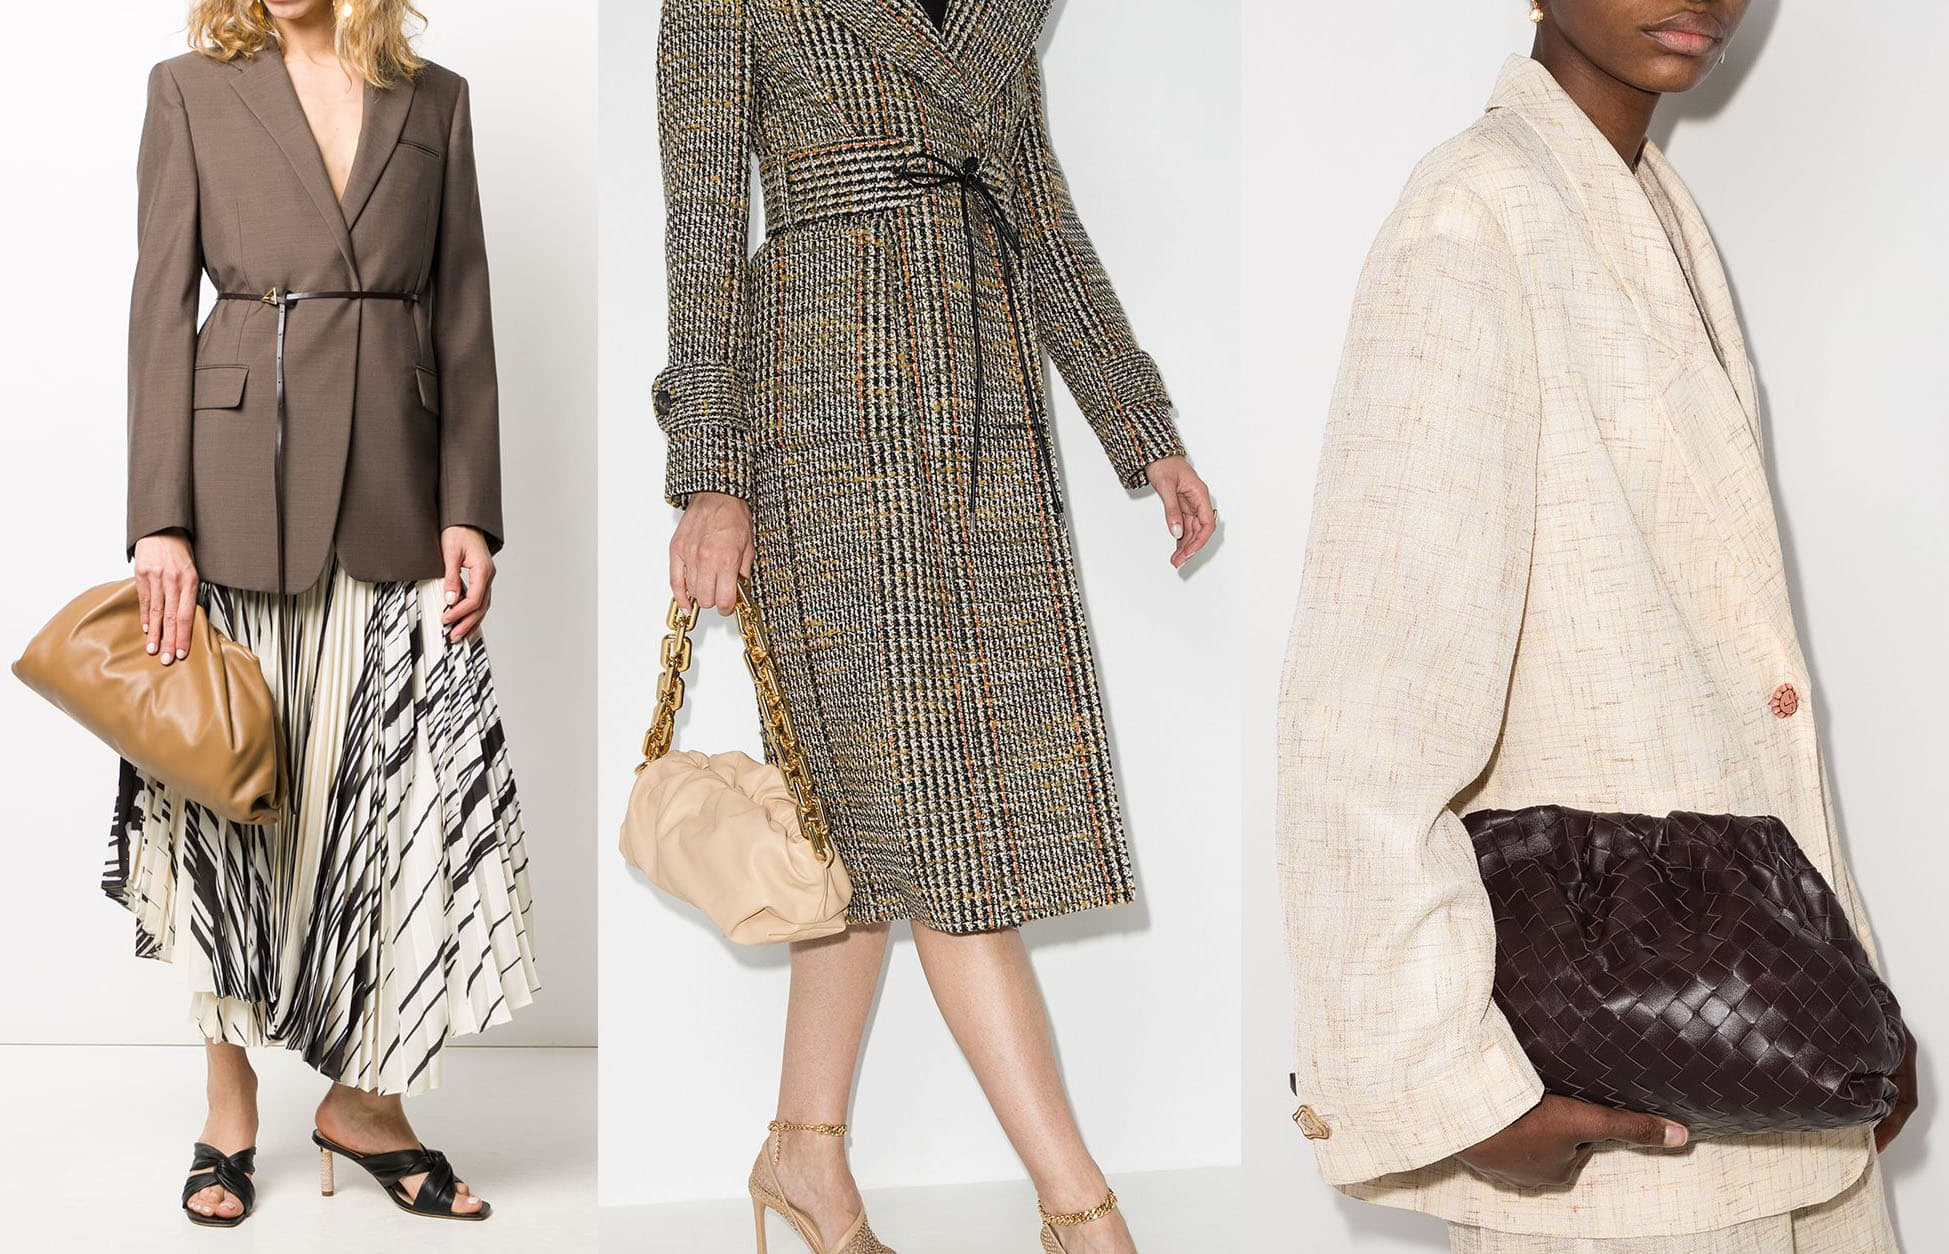 Introduced in 2019, Bottega Veneta's The Pouch clutch became the brand's fastest-selling bag